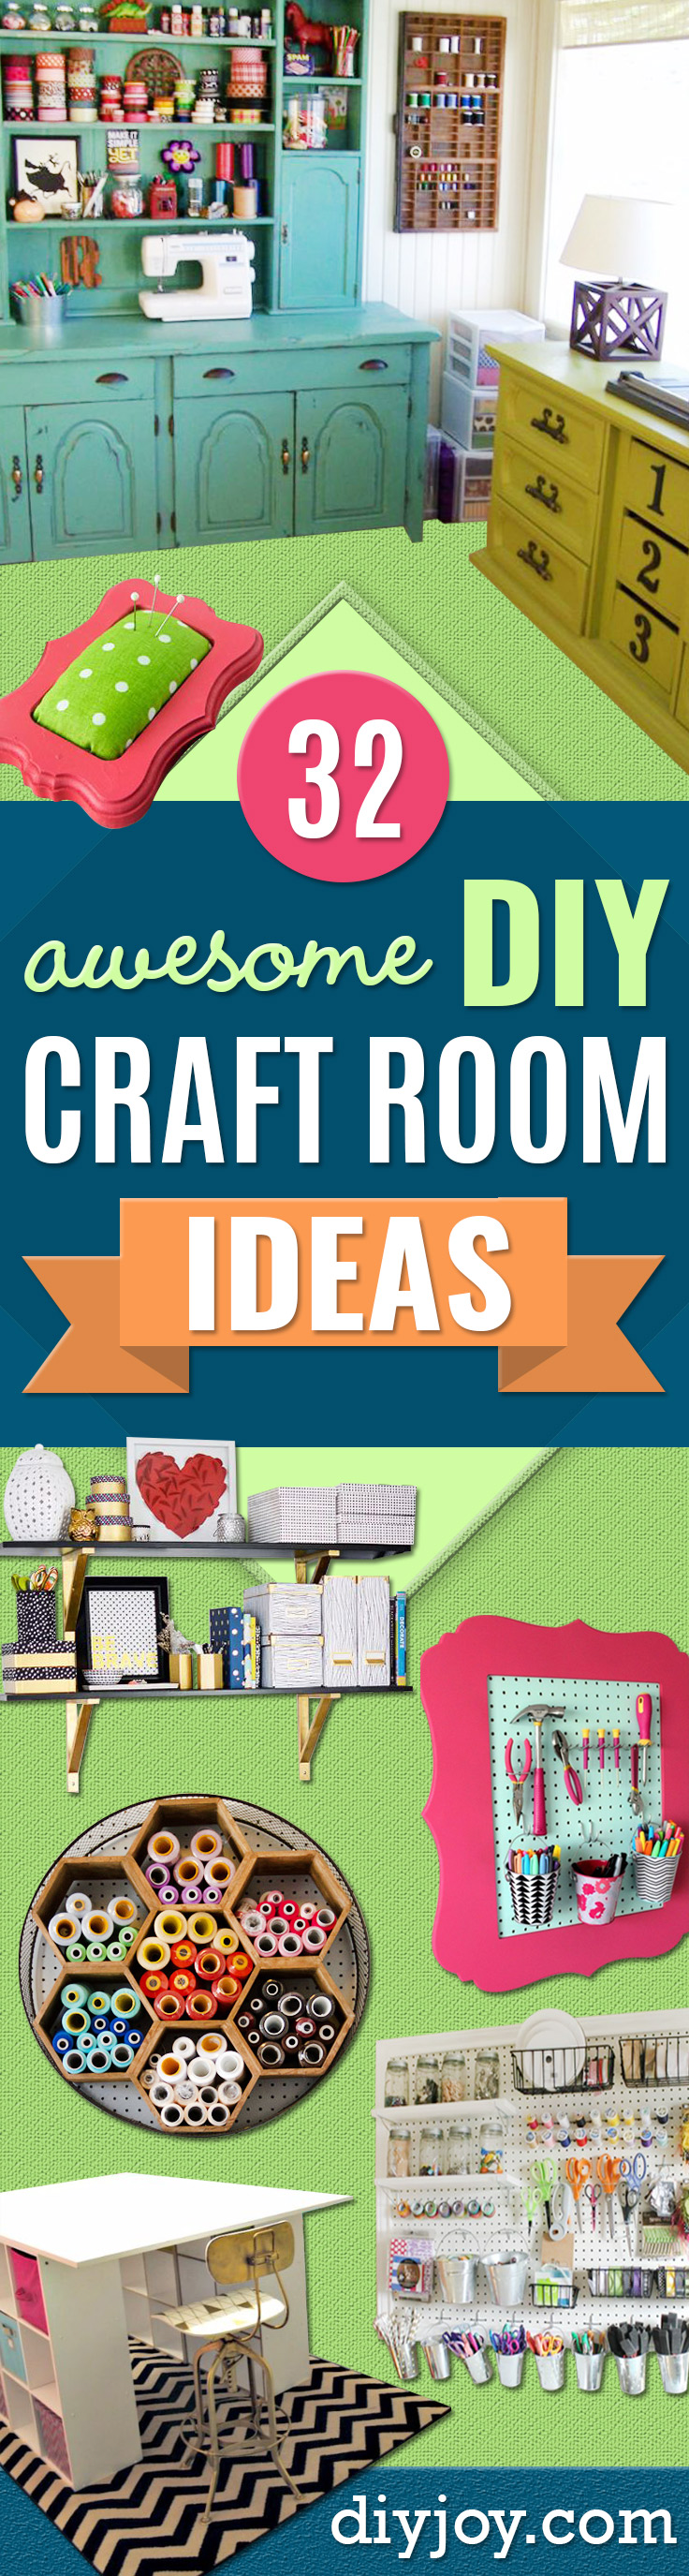 DIY Craft Room Ideas and Craft Room Organization Projects - Cool Ideas for Do It Yourself Craft Storage, Craft Room Decor and Organizing Project Ideas - fabric, paper, pens, creative tools, crafts supplies, shelves and sewing notions